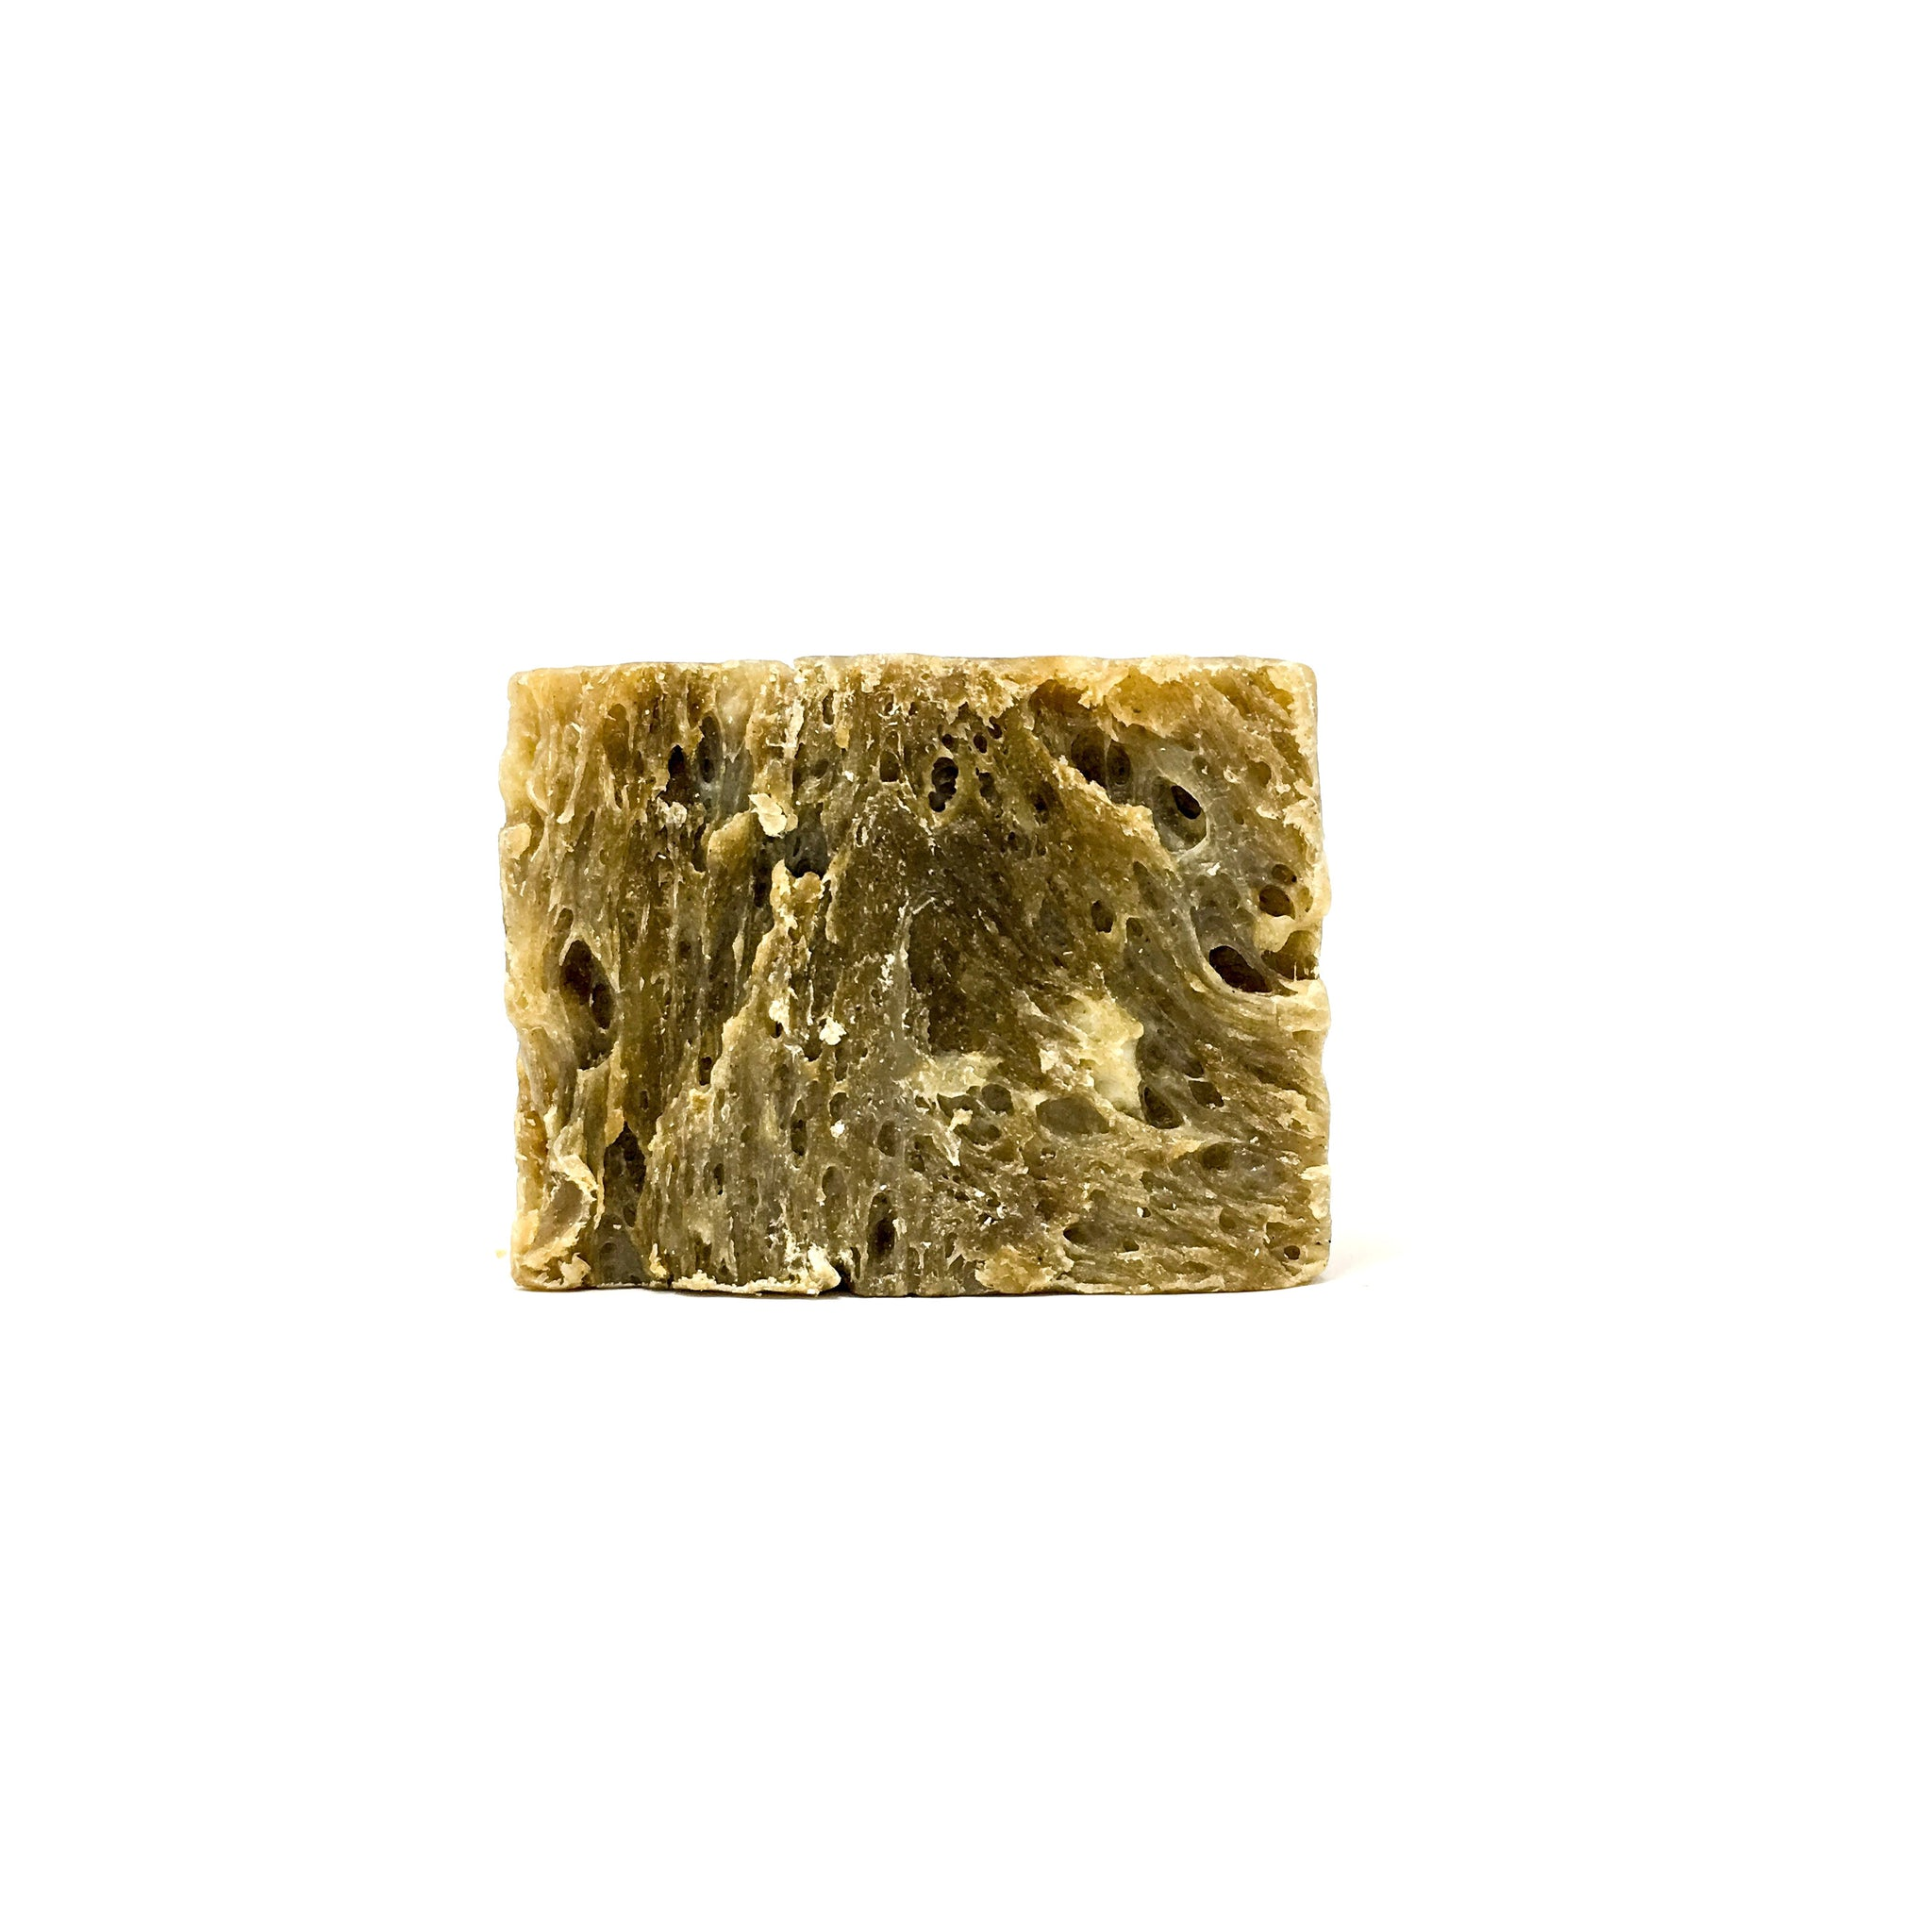 Black Seed Oil Shampoo Bar Soap